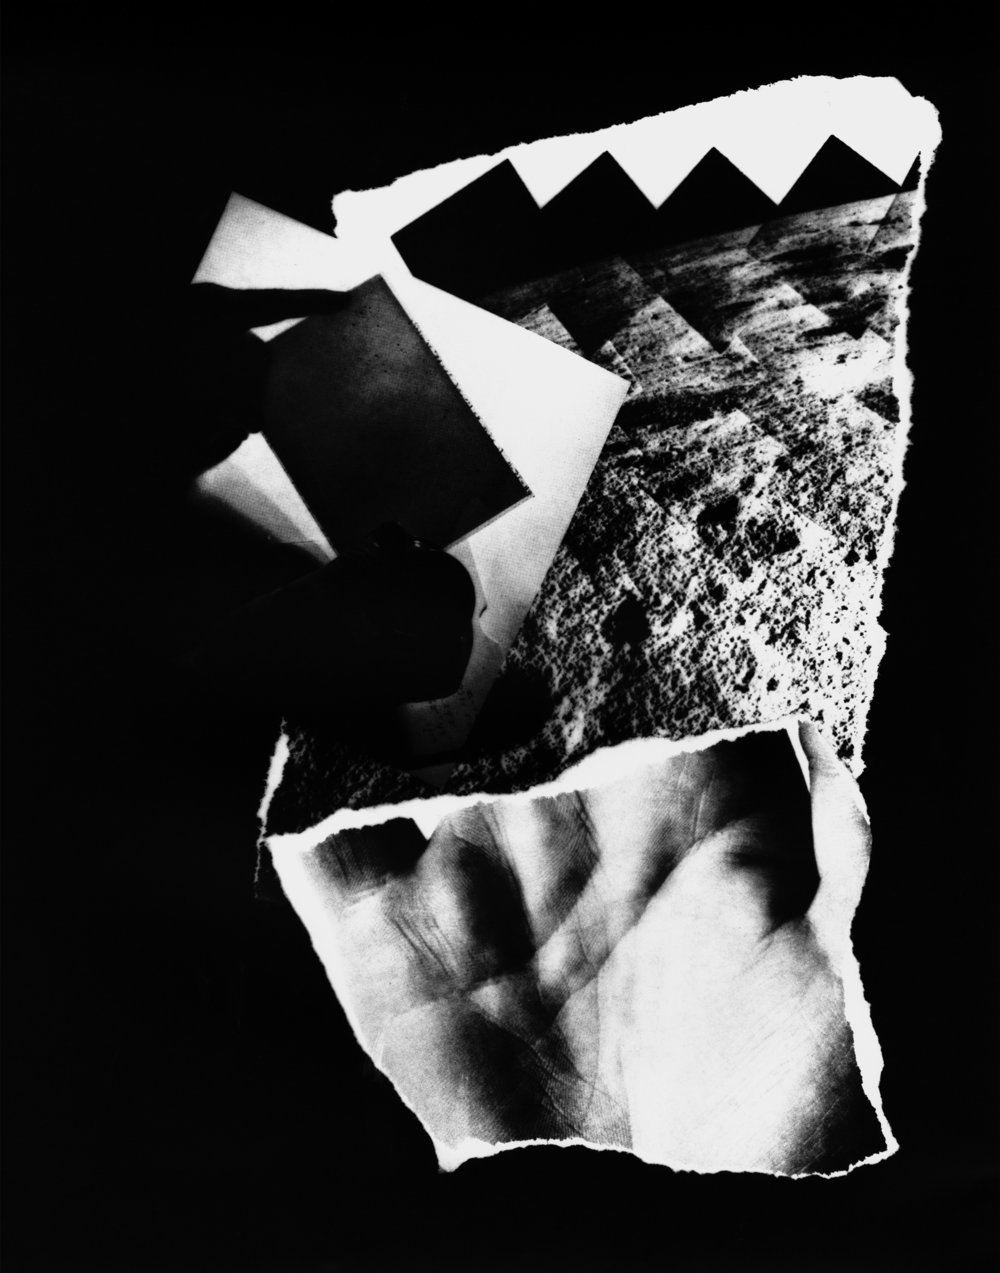 rearrangements_growleryphotograms_0005.jpg